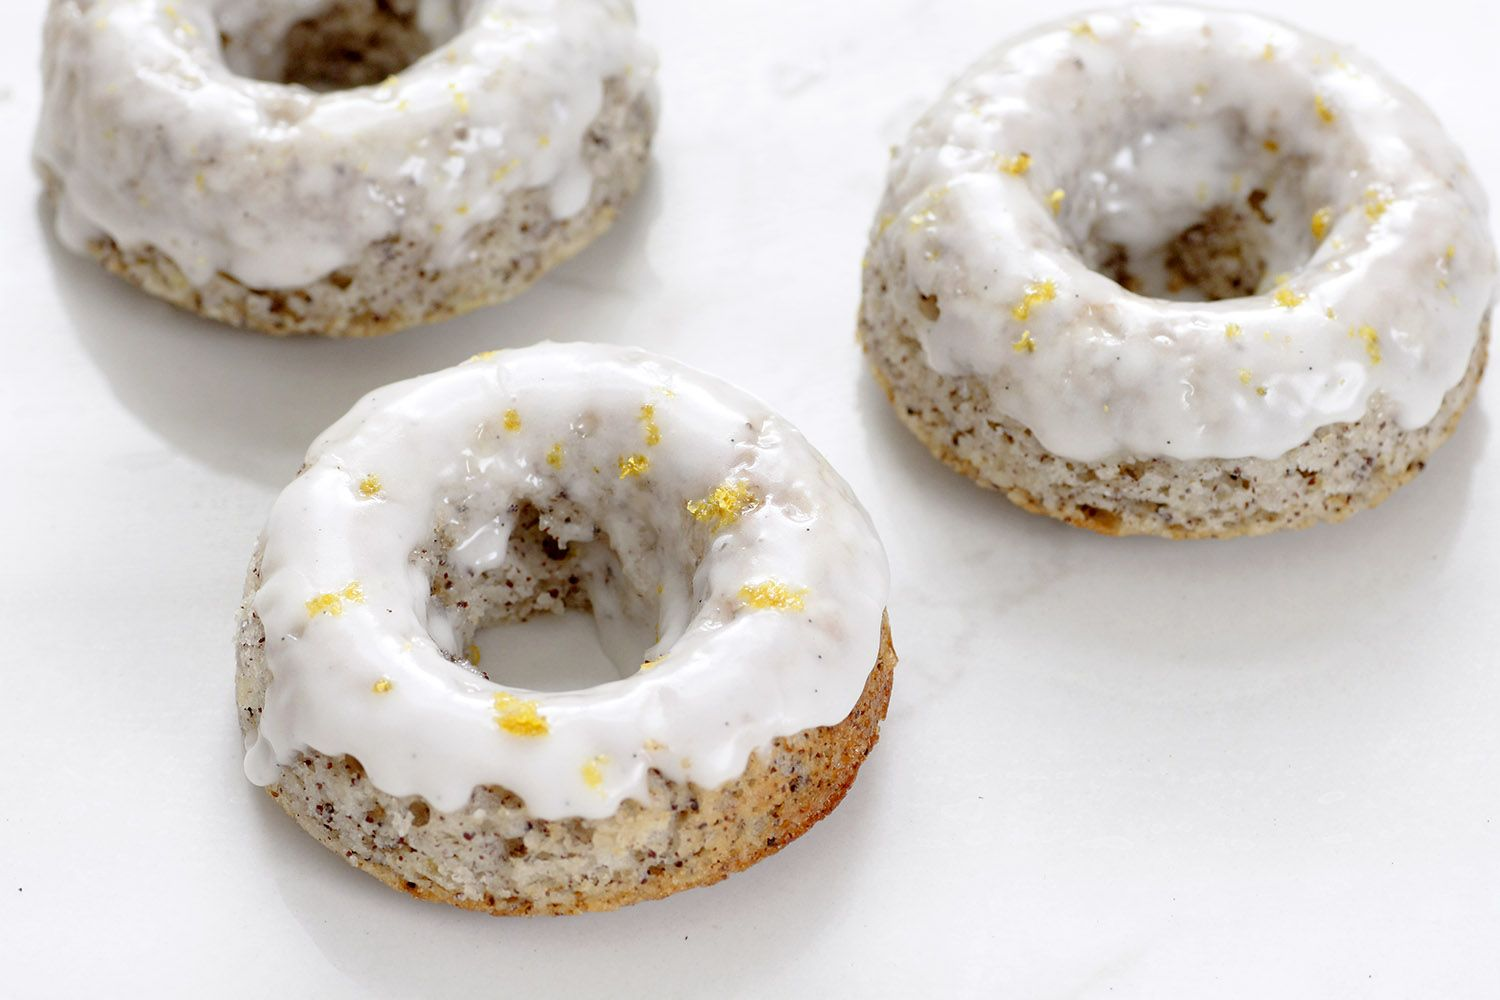 Lemon and Poppy Seeds Baked Donuts